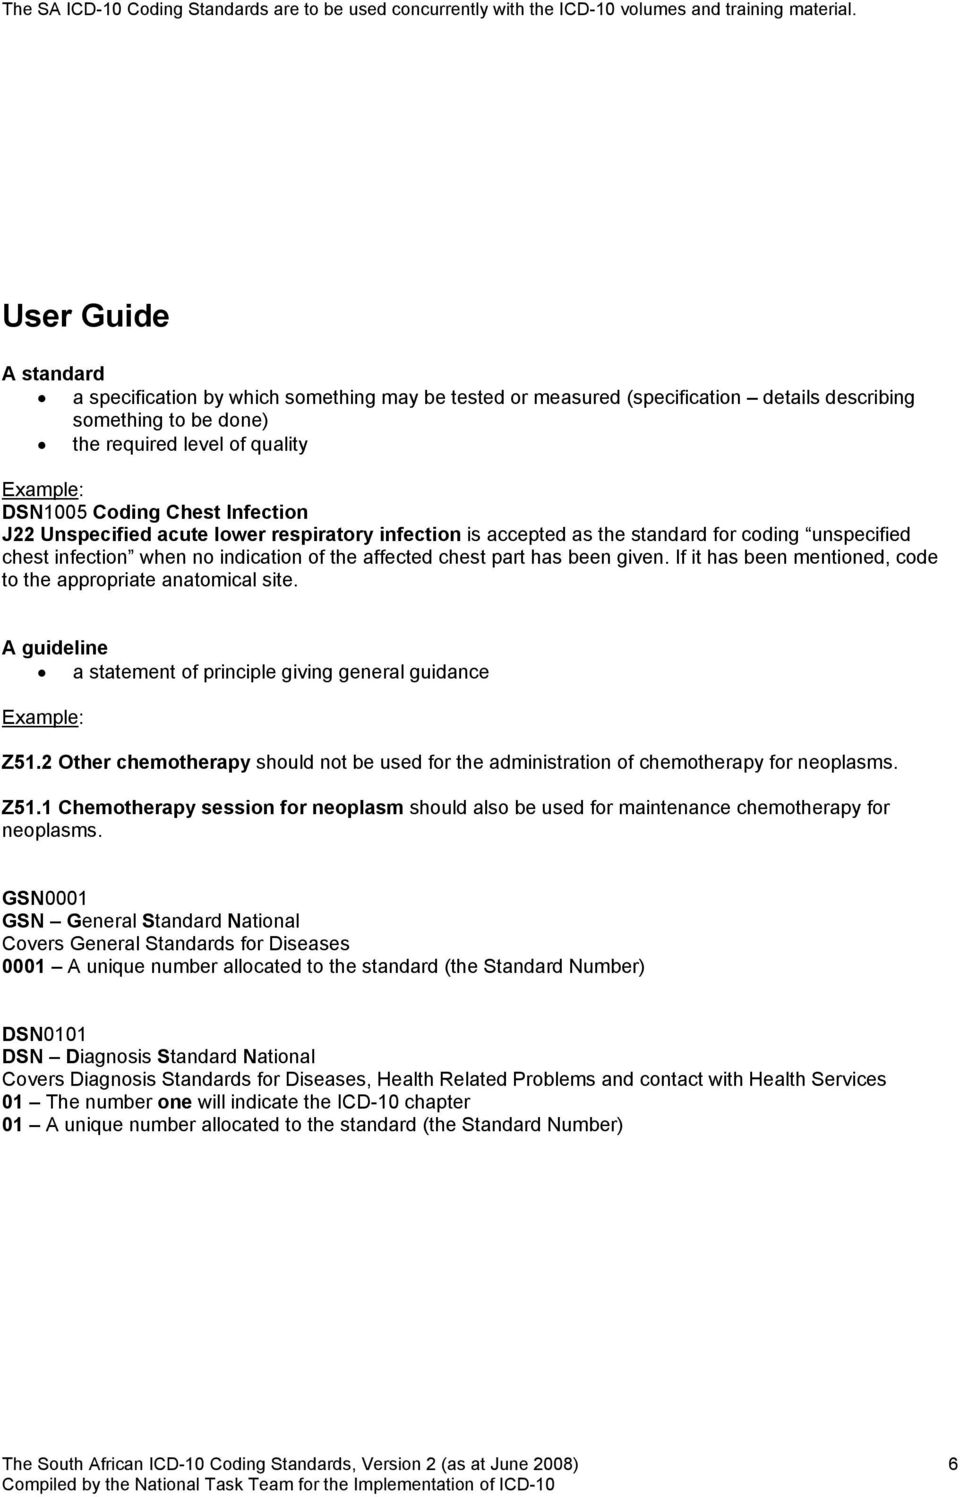 icd10 codes south africa